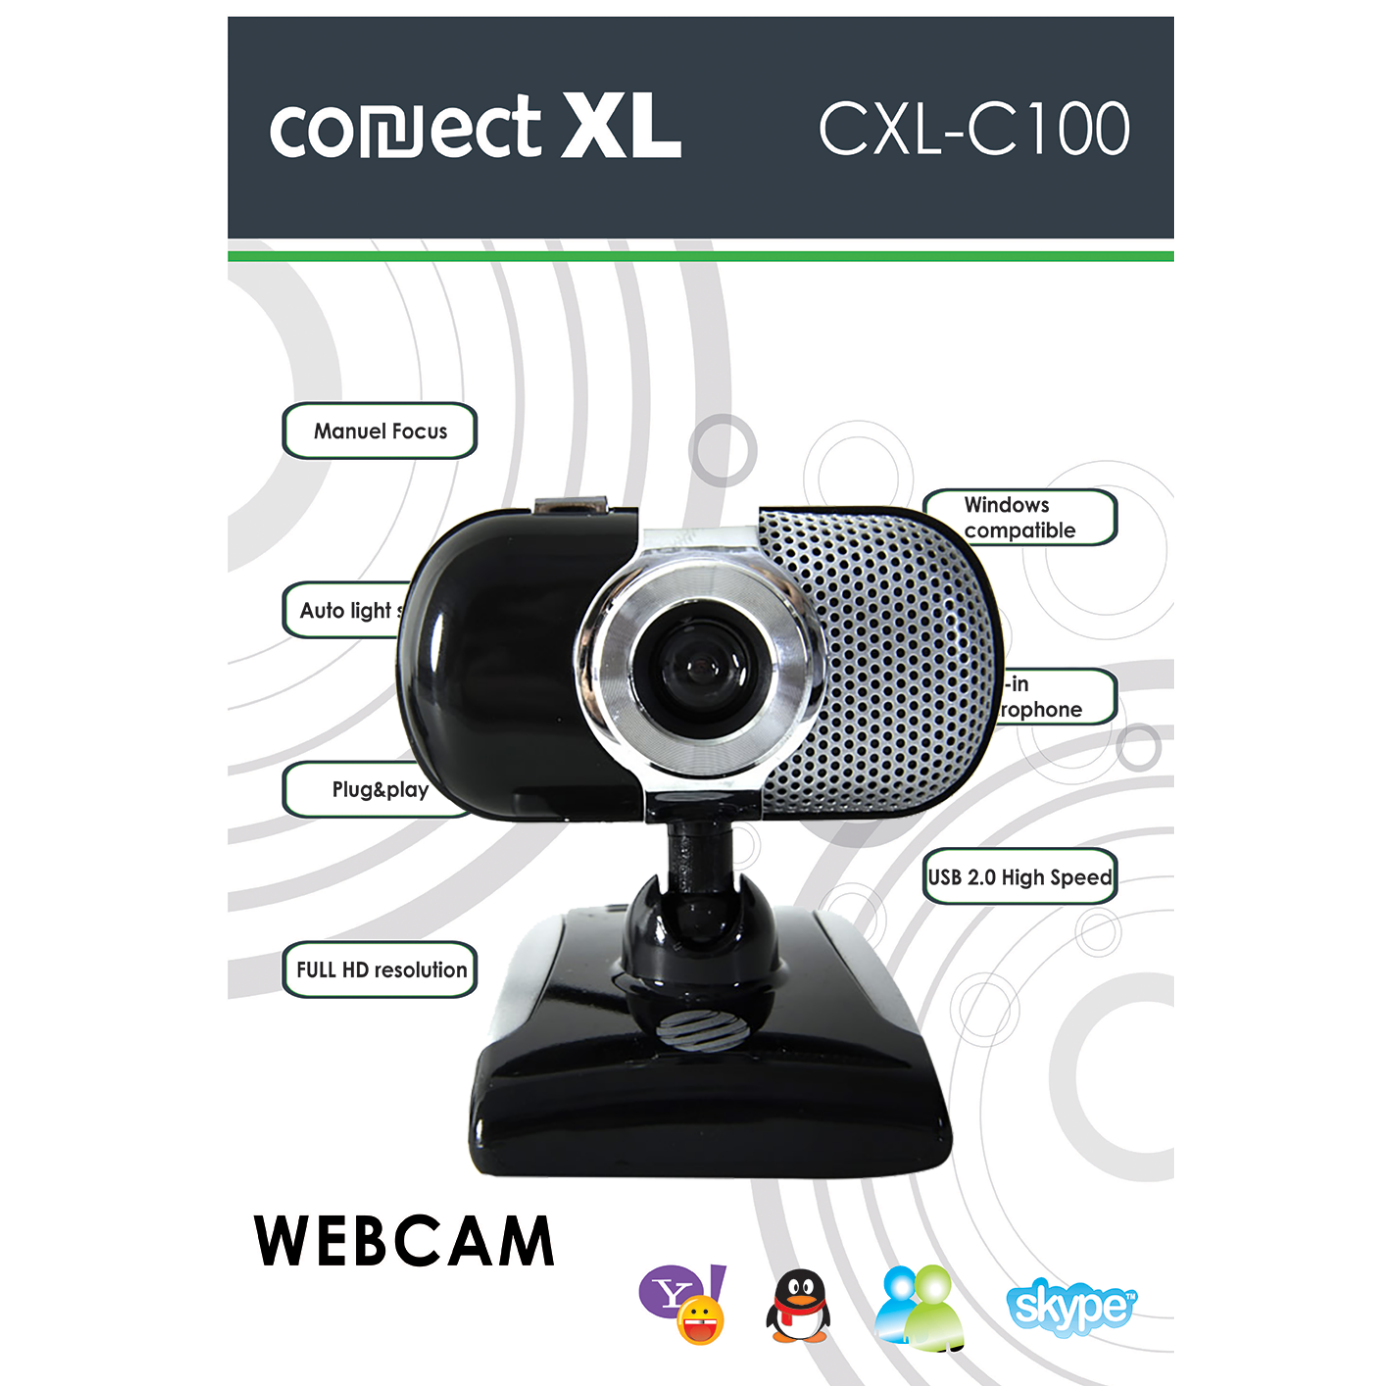 Connect XL - CXL-C100